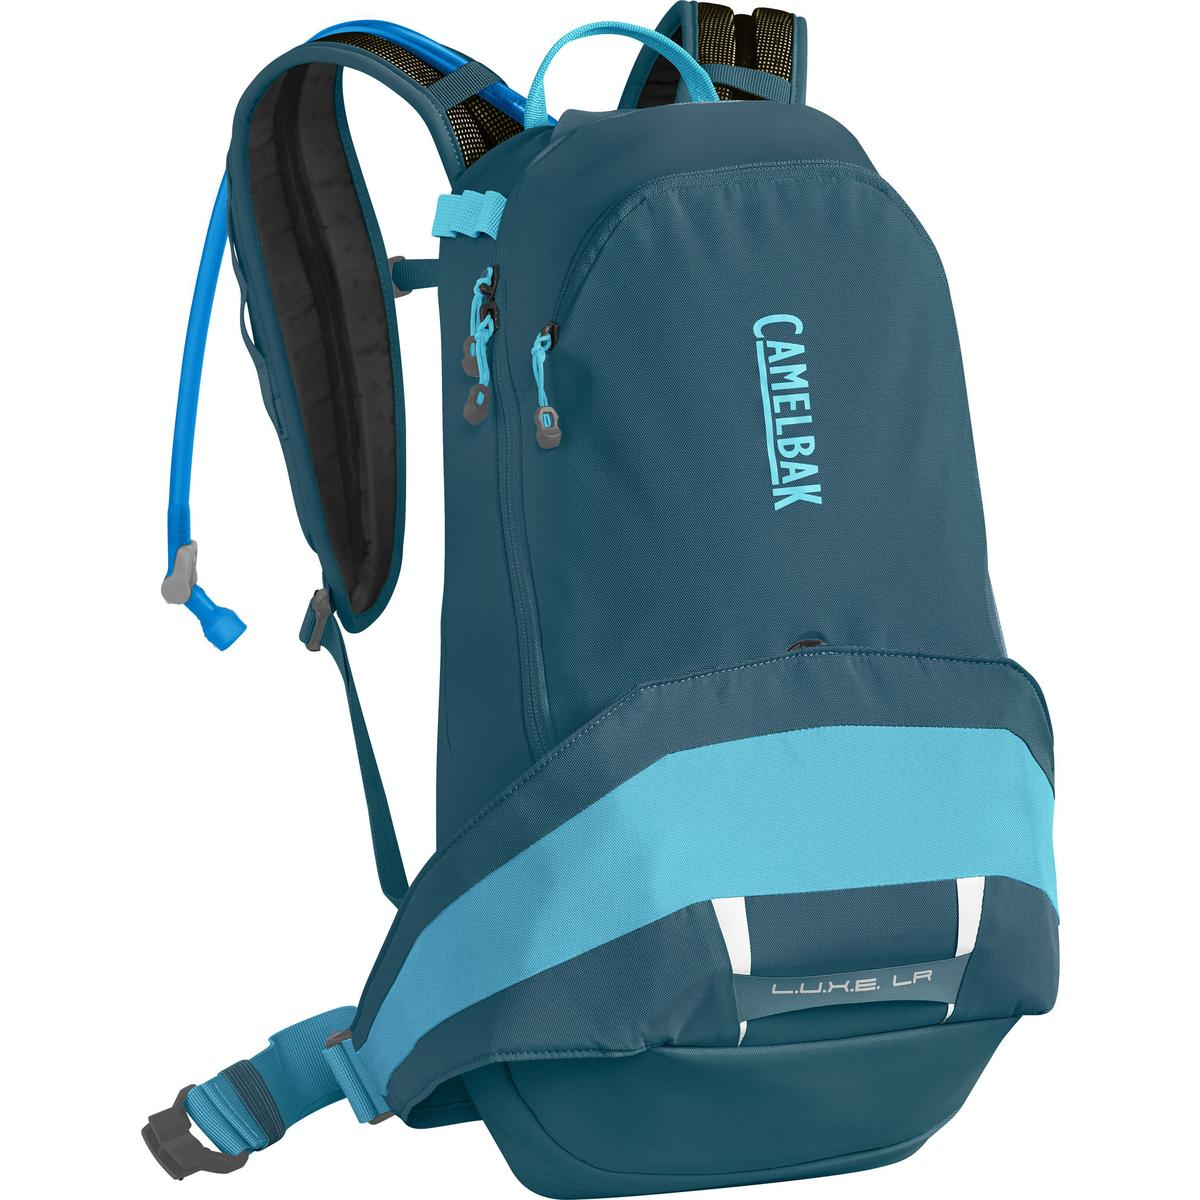 Camelbak LUXE LR 14 100 OZ Women's Hydration Pack